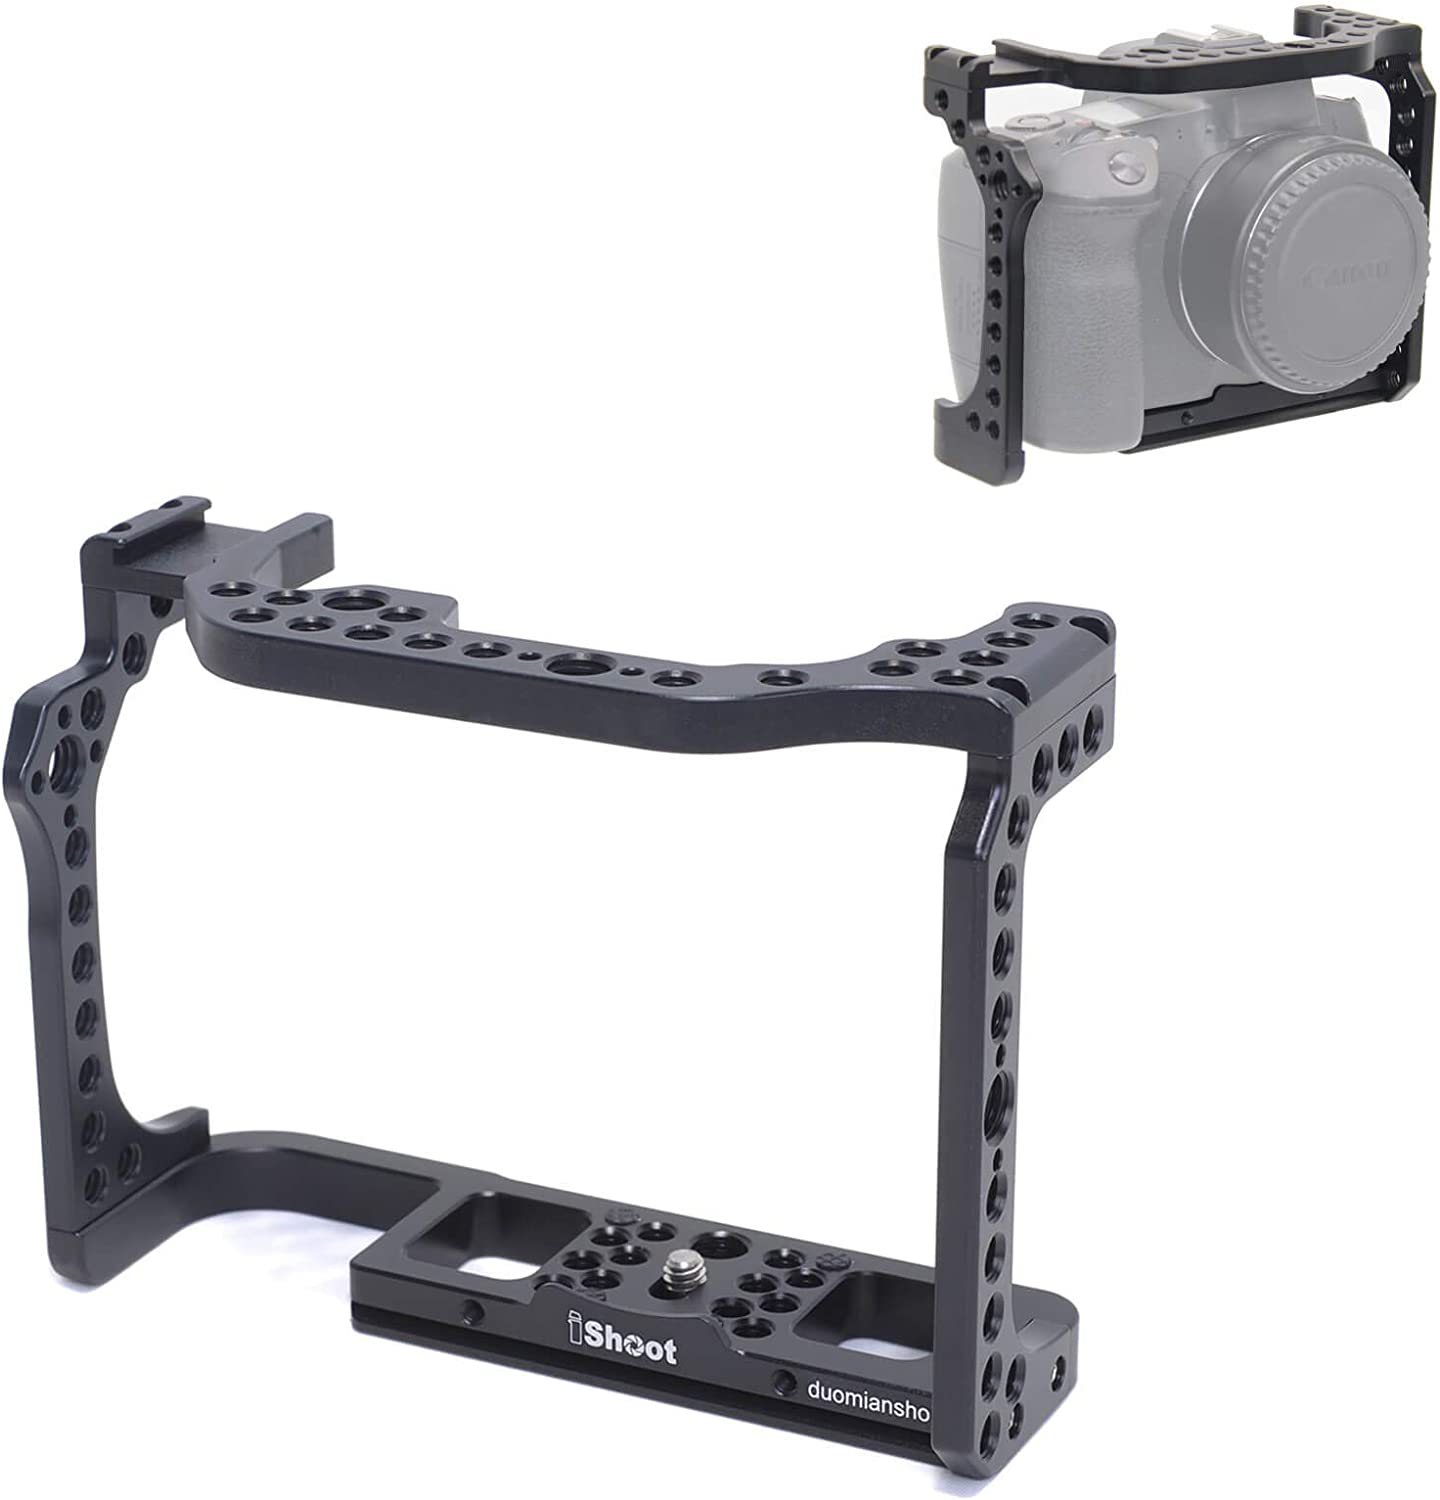 Built-in 1//4 and 3//8 Thread Hole and Arca-Swiss Quick Release Plate iShoot Video Vlogging Camera Cage Stabilizer Compatible with Canon EOS R and Canon EOS RP Mirrorless Digital Camera